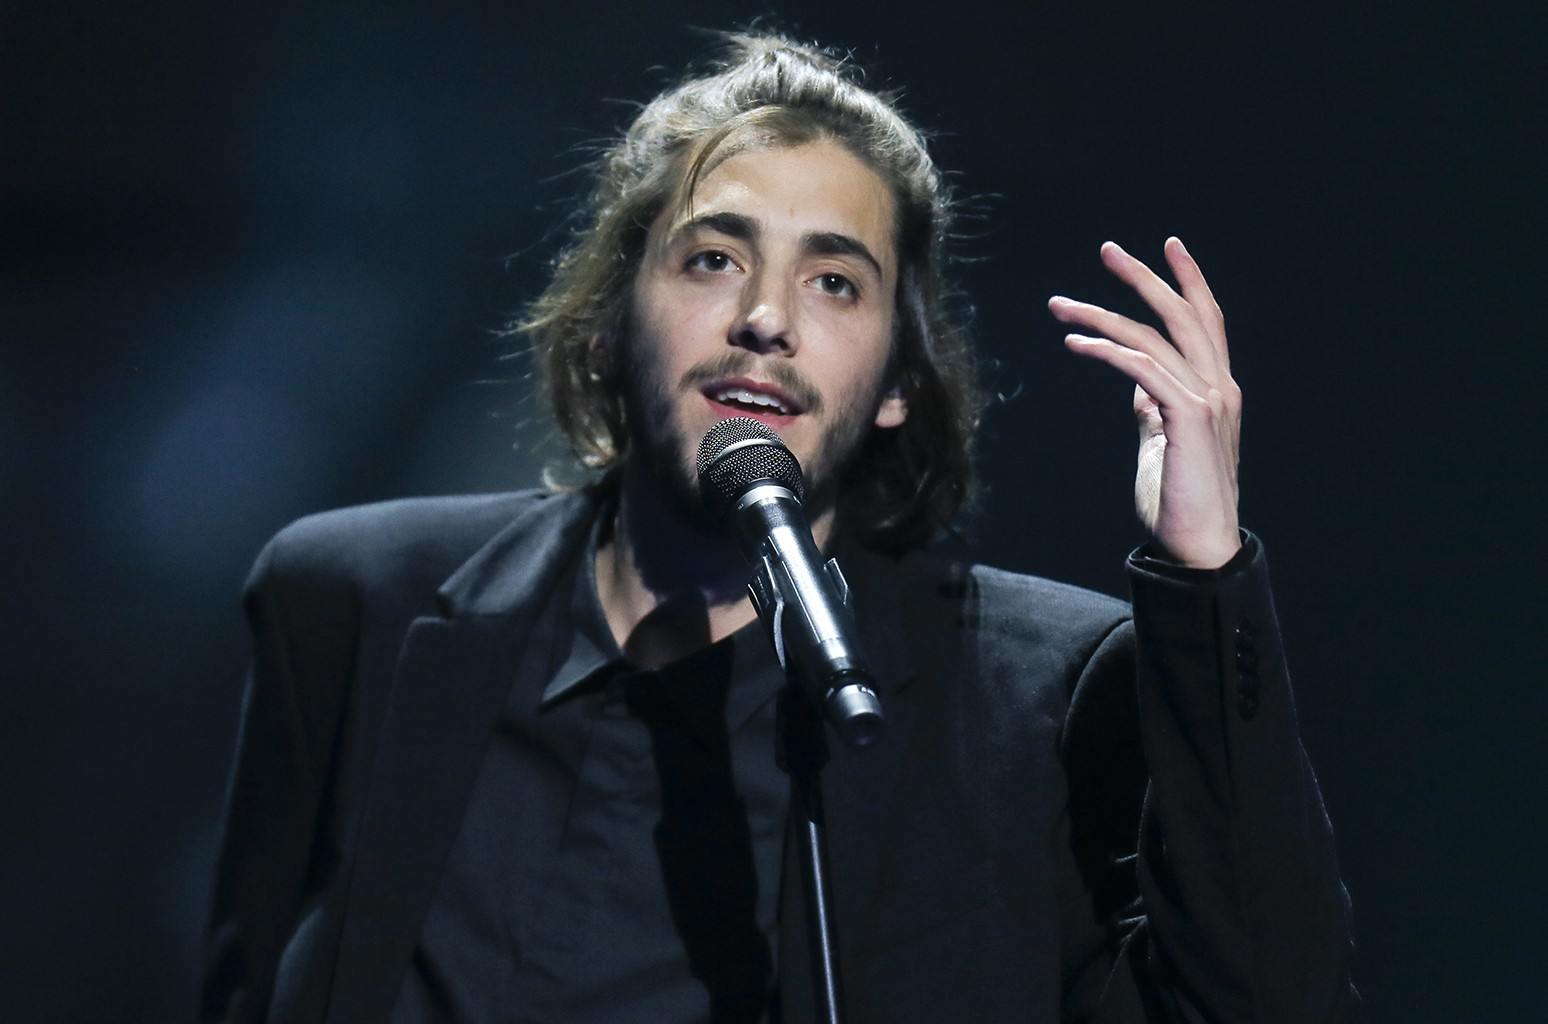 """Salvador Sobral from Portugal performs the song """"Amar pelos dois"""" during rehearsals for the Eurovision Song Contest, in Kiev, Ukraine on May 12, 2017."""